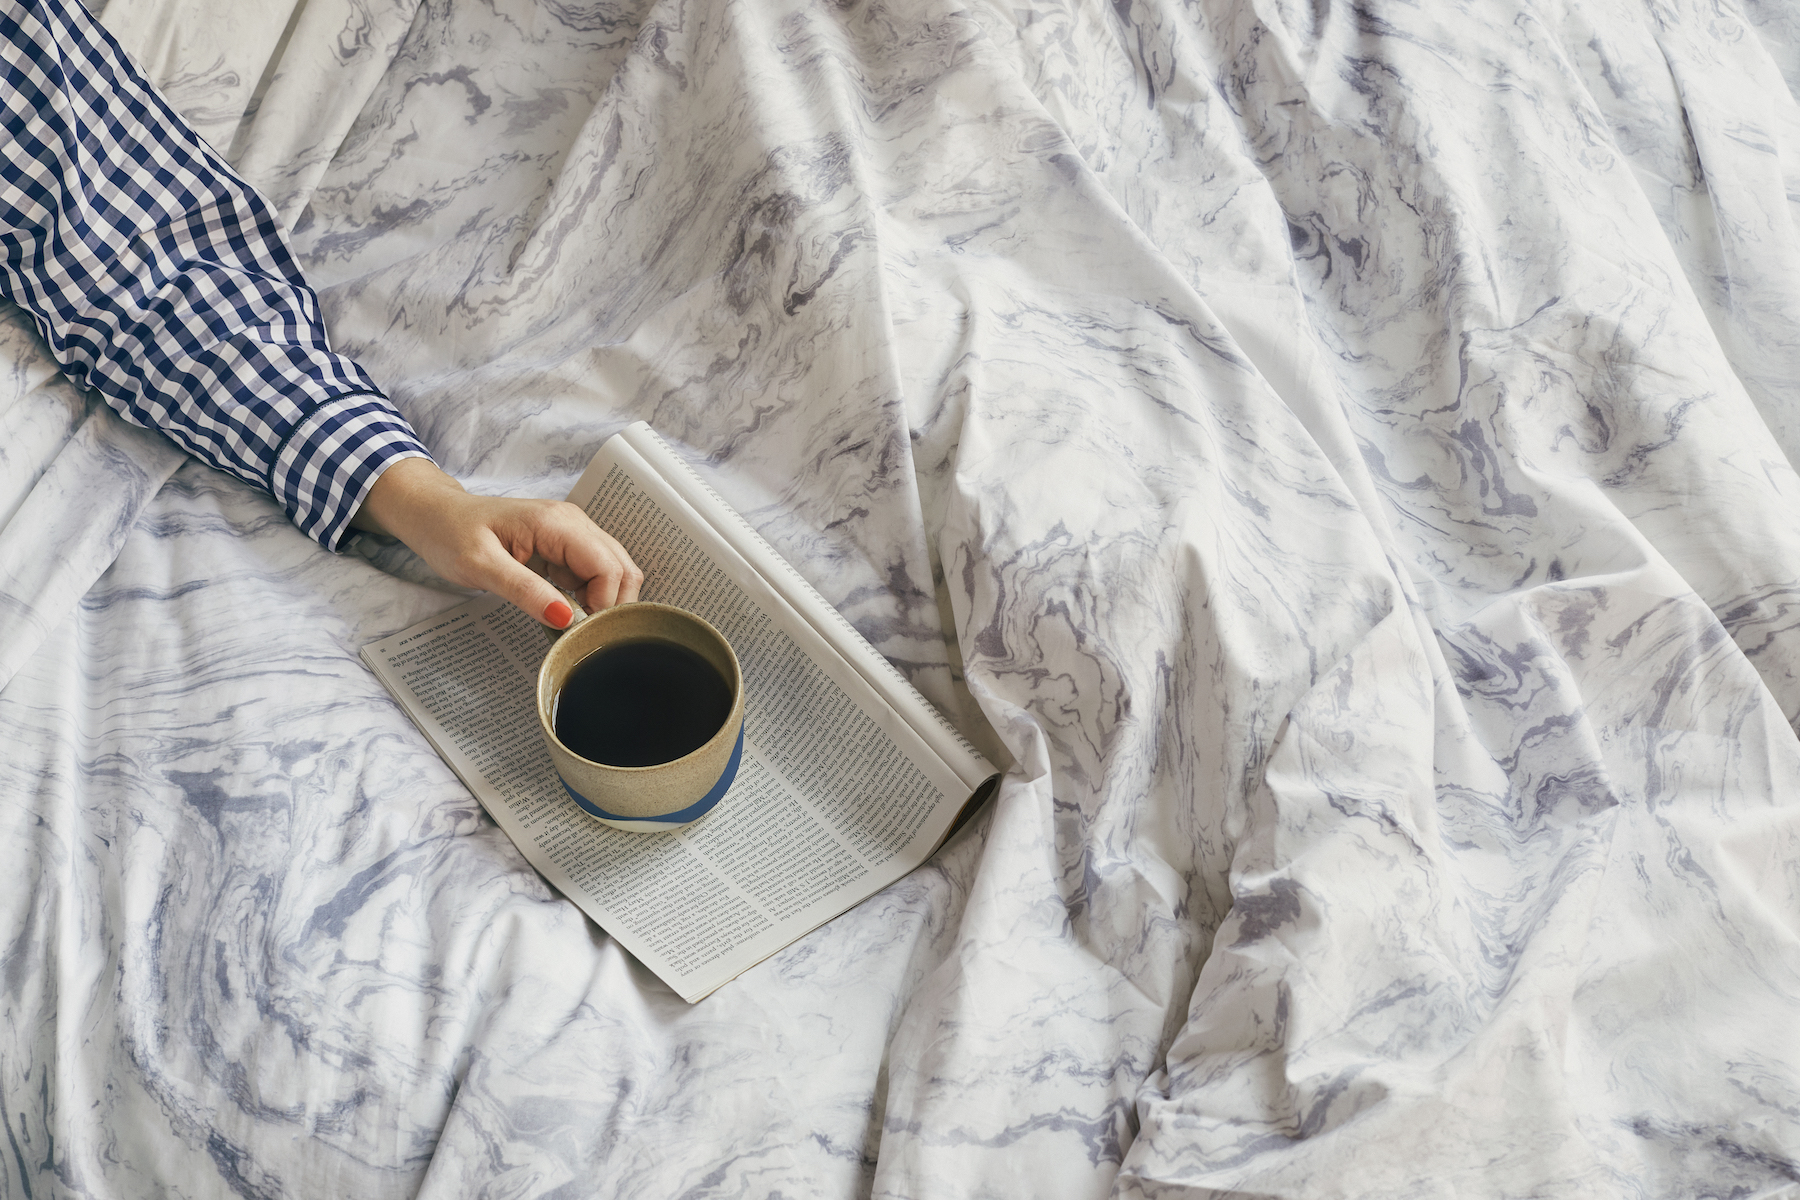 Marbled cloud patterned duvet cover, with mug